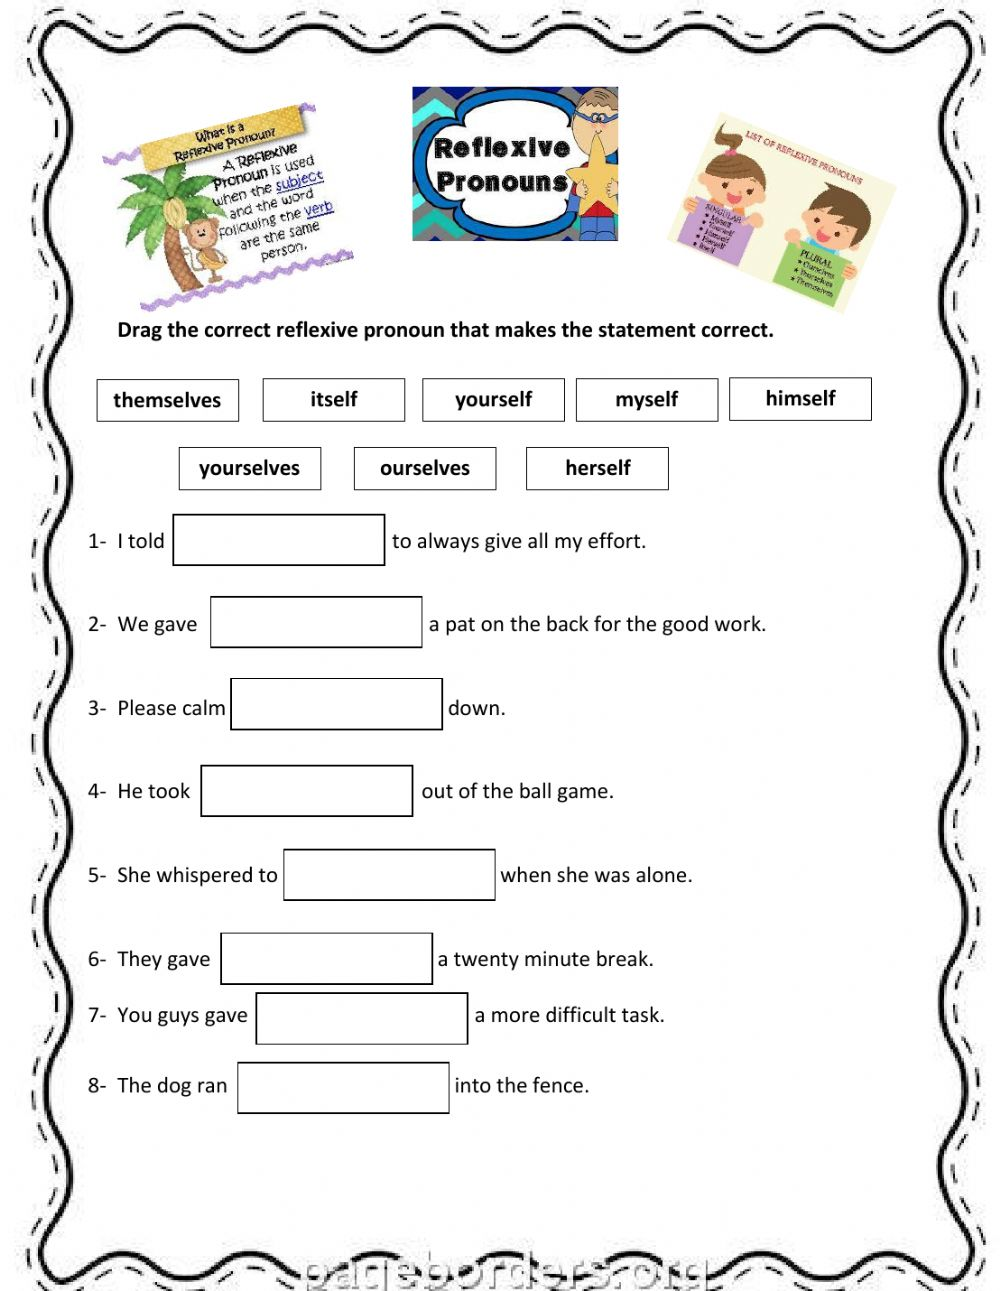 medium resolution of Reflexive Pronouns zsciencez worksheet